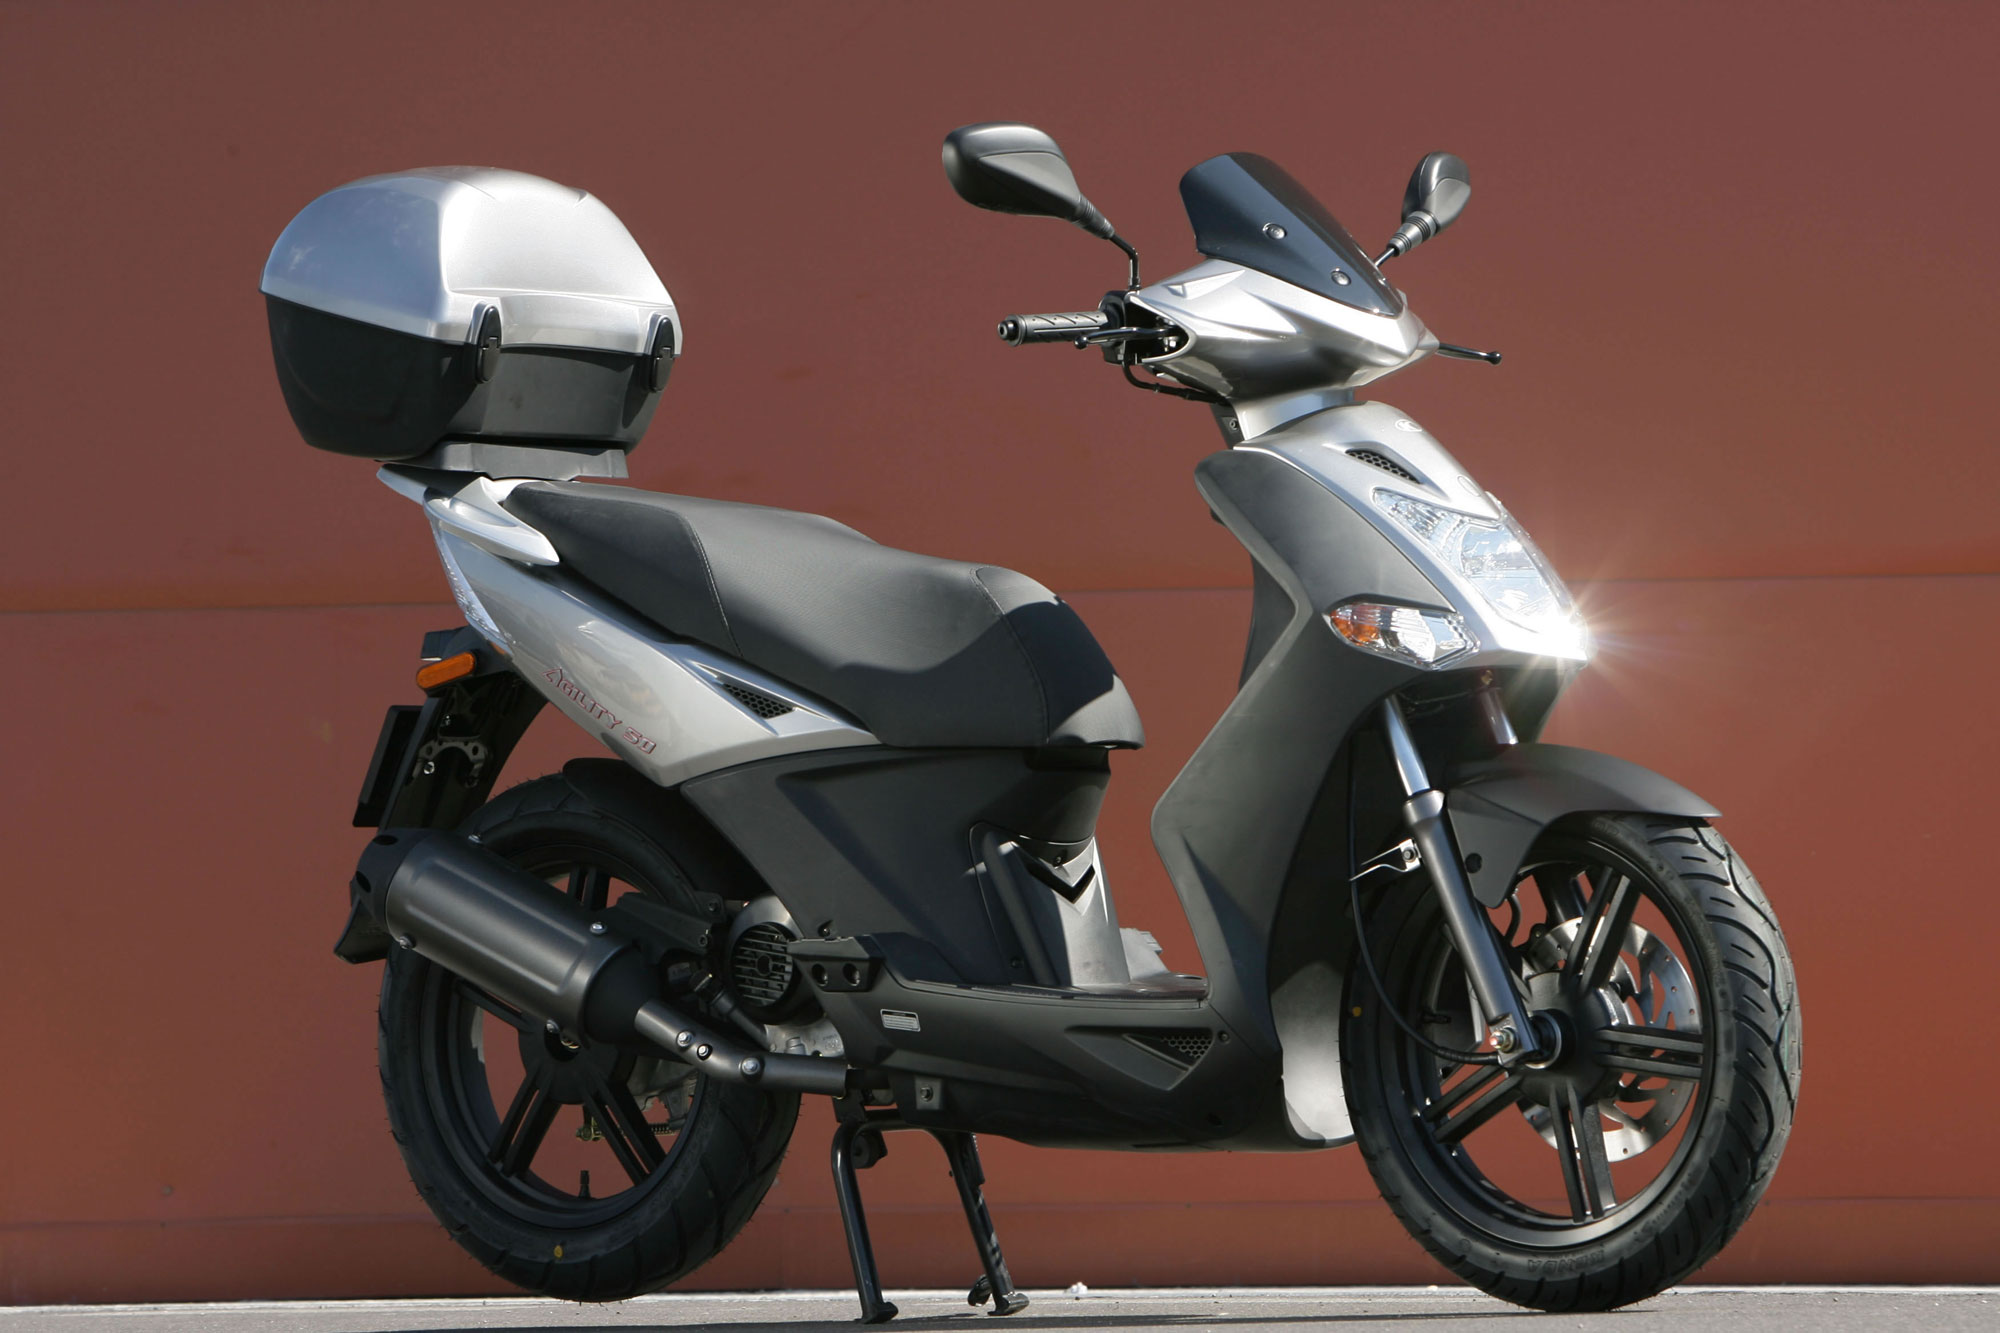 kymco agility city 50 4t specs 2011 2012 autoevolution. Black Bedroom Furniture Sets. Home Design Ideas